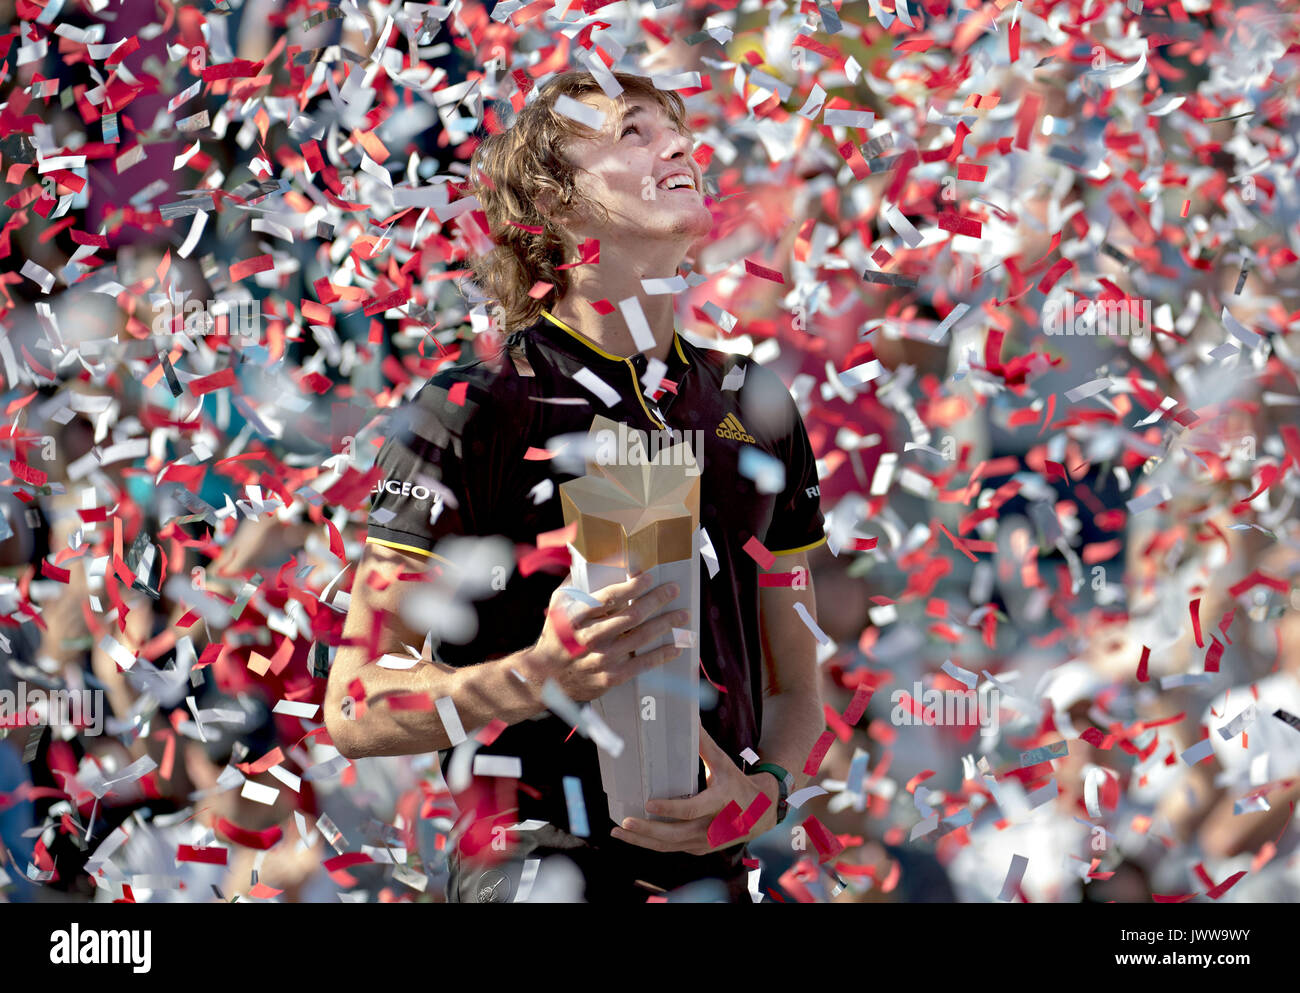 Montreal, Canada. 13th Aug, 2017. Alexander Zverev of Germany reacts during the awarding ceremony after the final - Stock Image